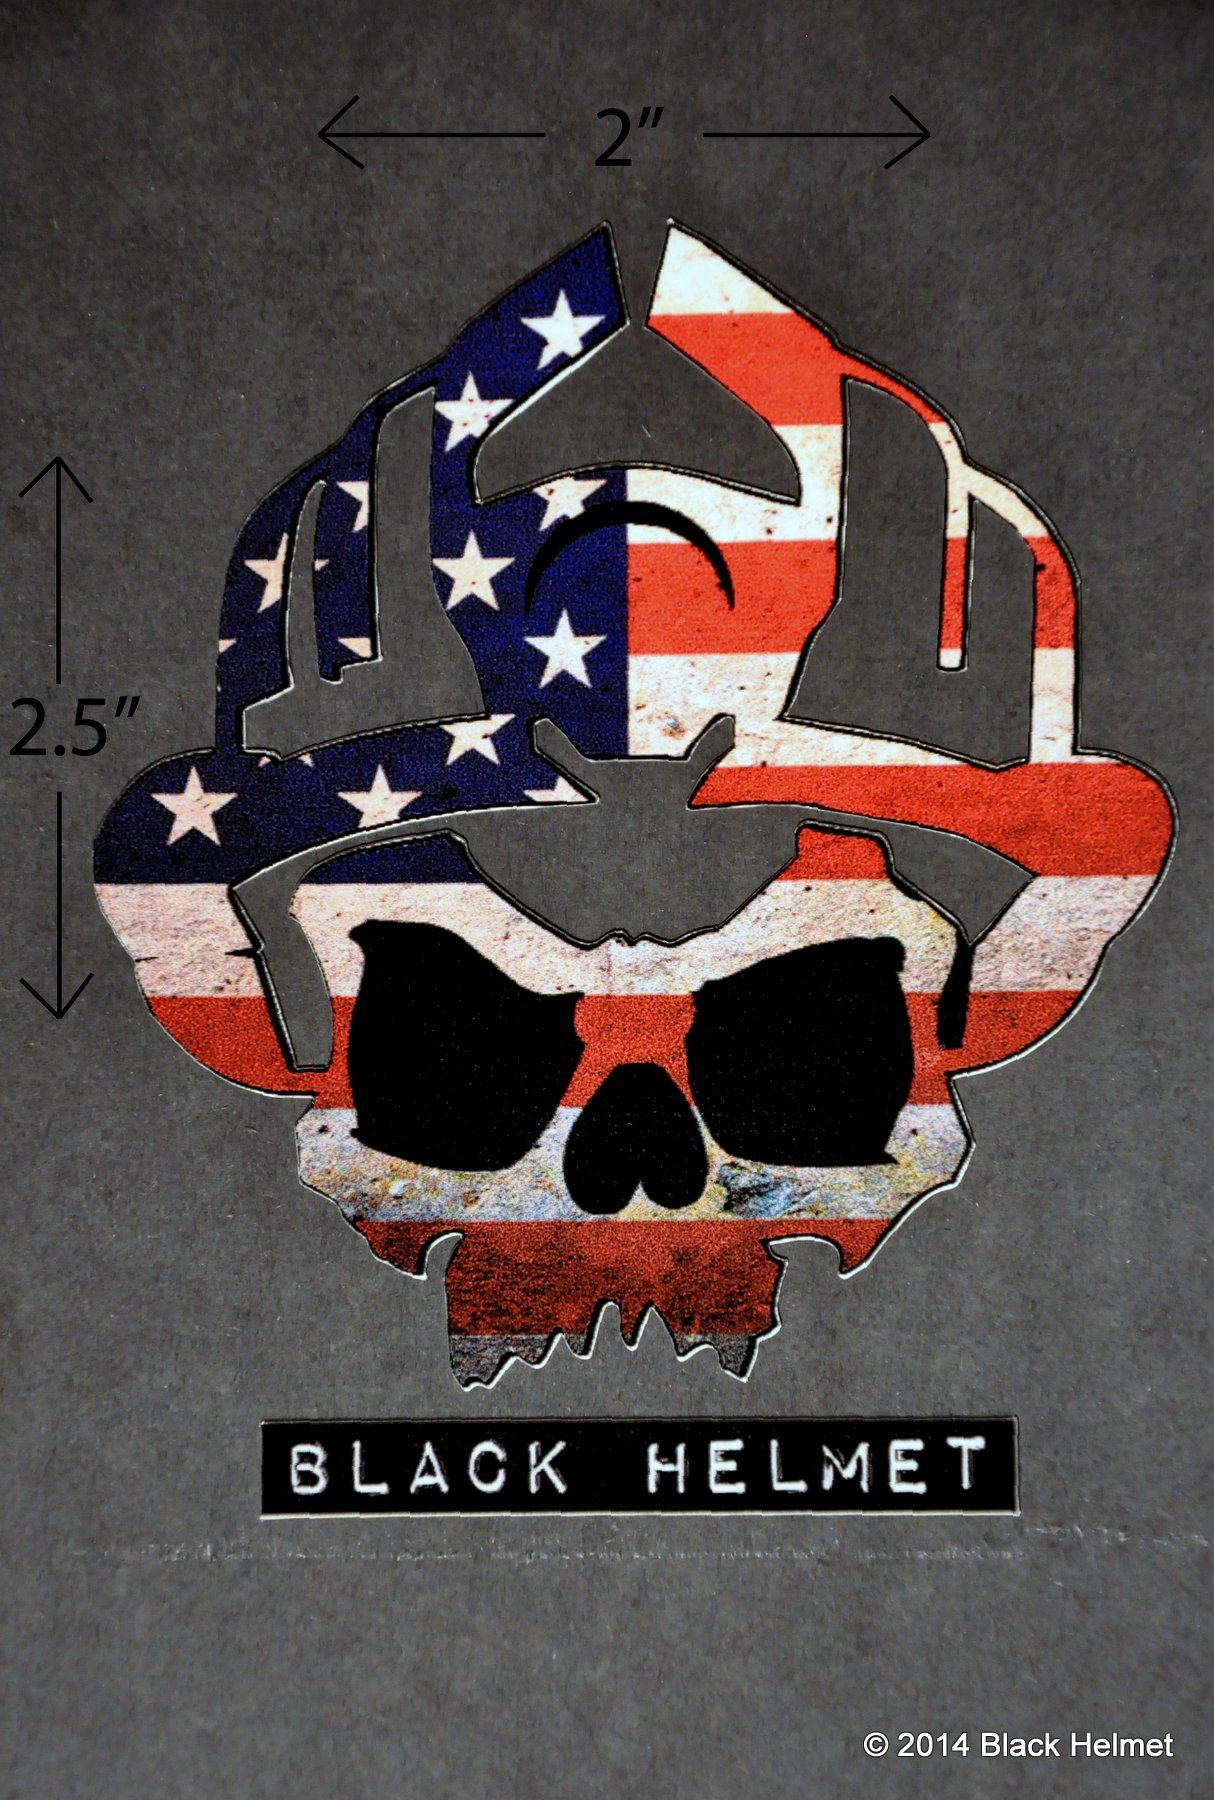 American Flag (Old Glory) Skull Logo Helmet Decal - Black Helmet Firefighter  Shirts, Hats, Decals and Accessories